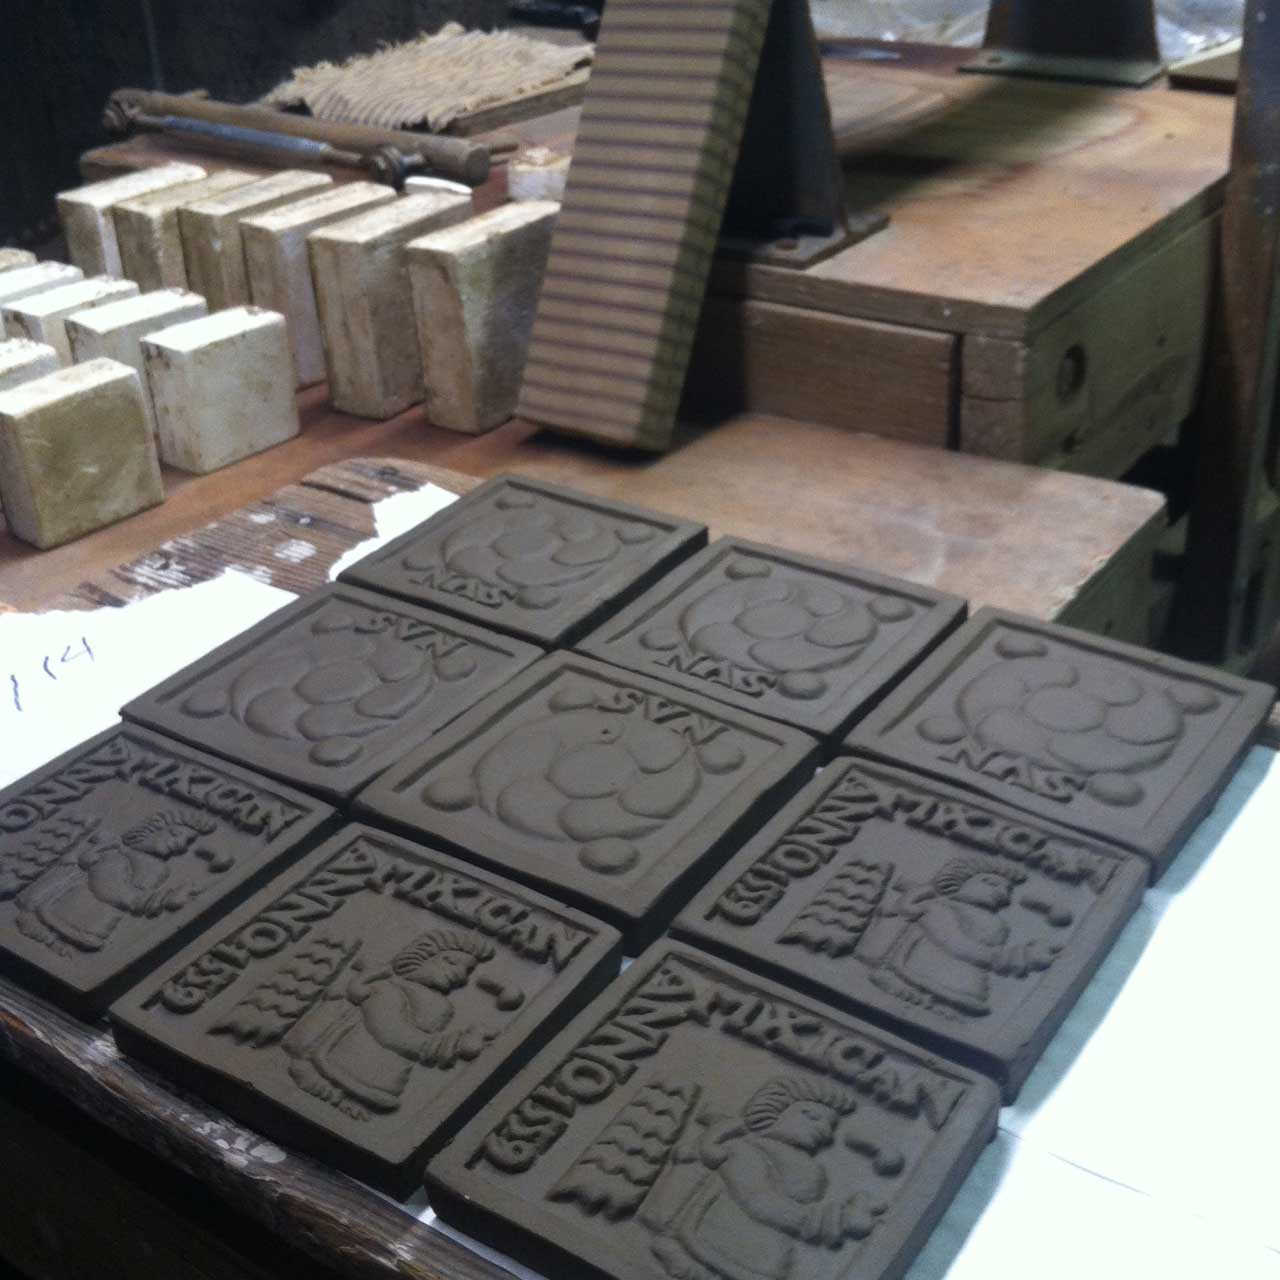 These tiles have just been stamped, and will dry for several weeks before they are glazed and fired.